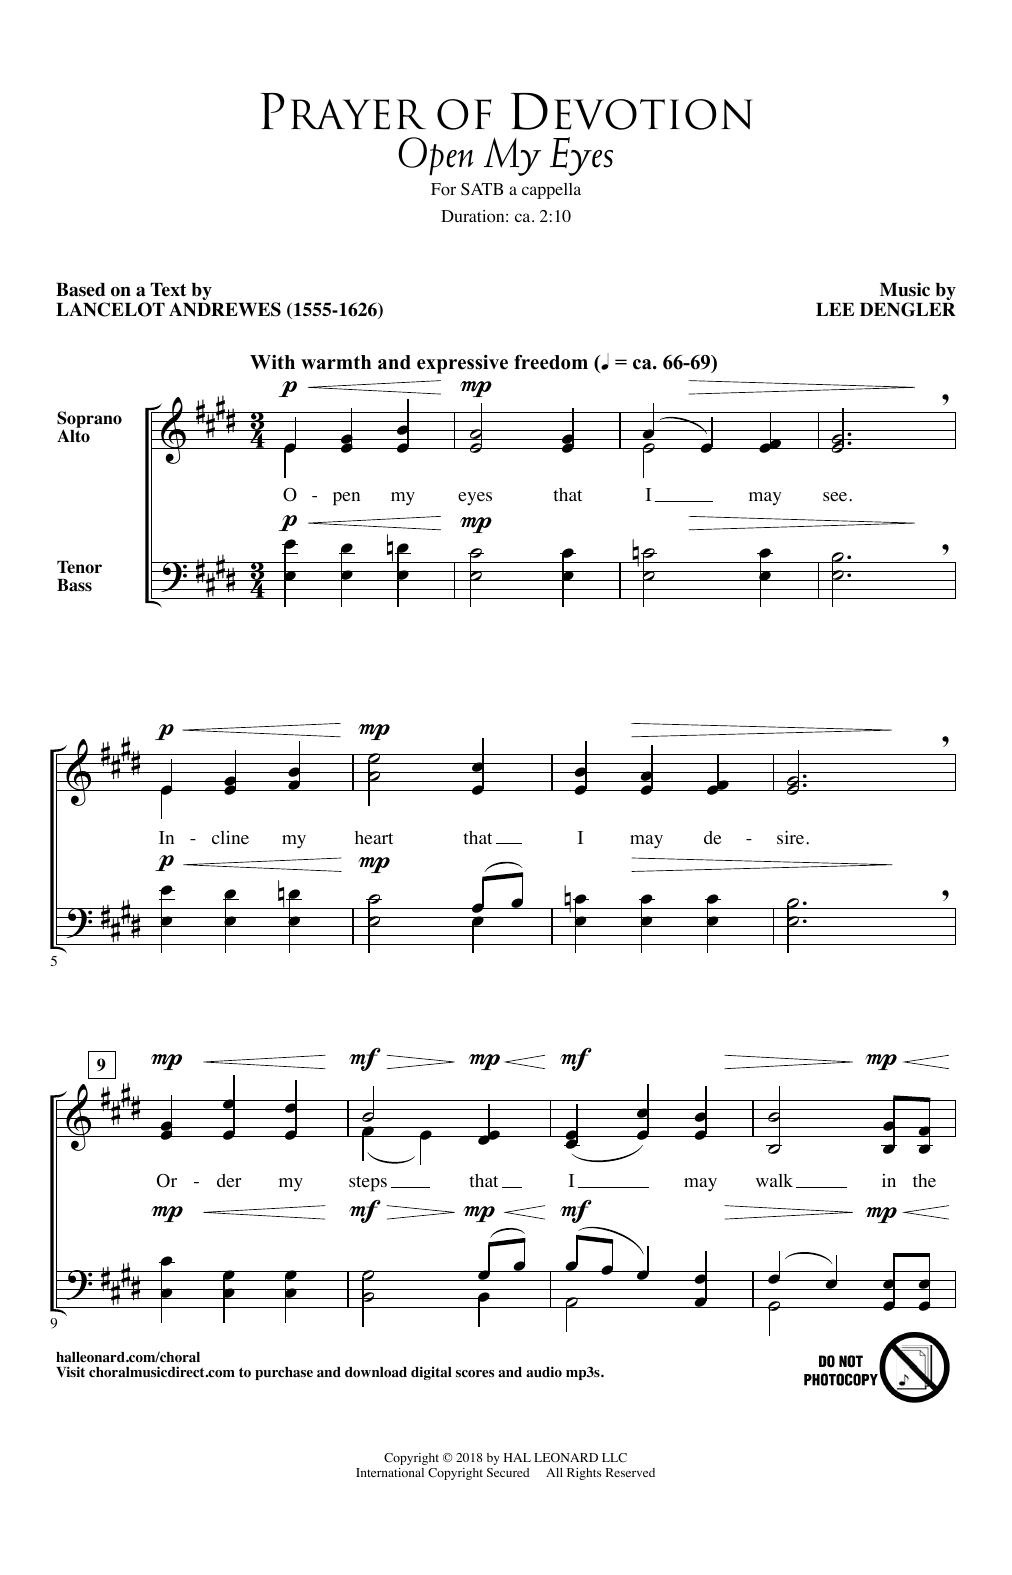 Lee Dengler Prayer Of Devotion (Open My Eyes) sheet music notes and chords. Download Printable PDF.